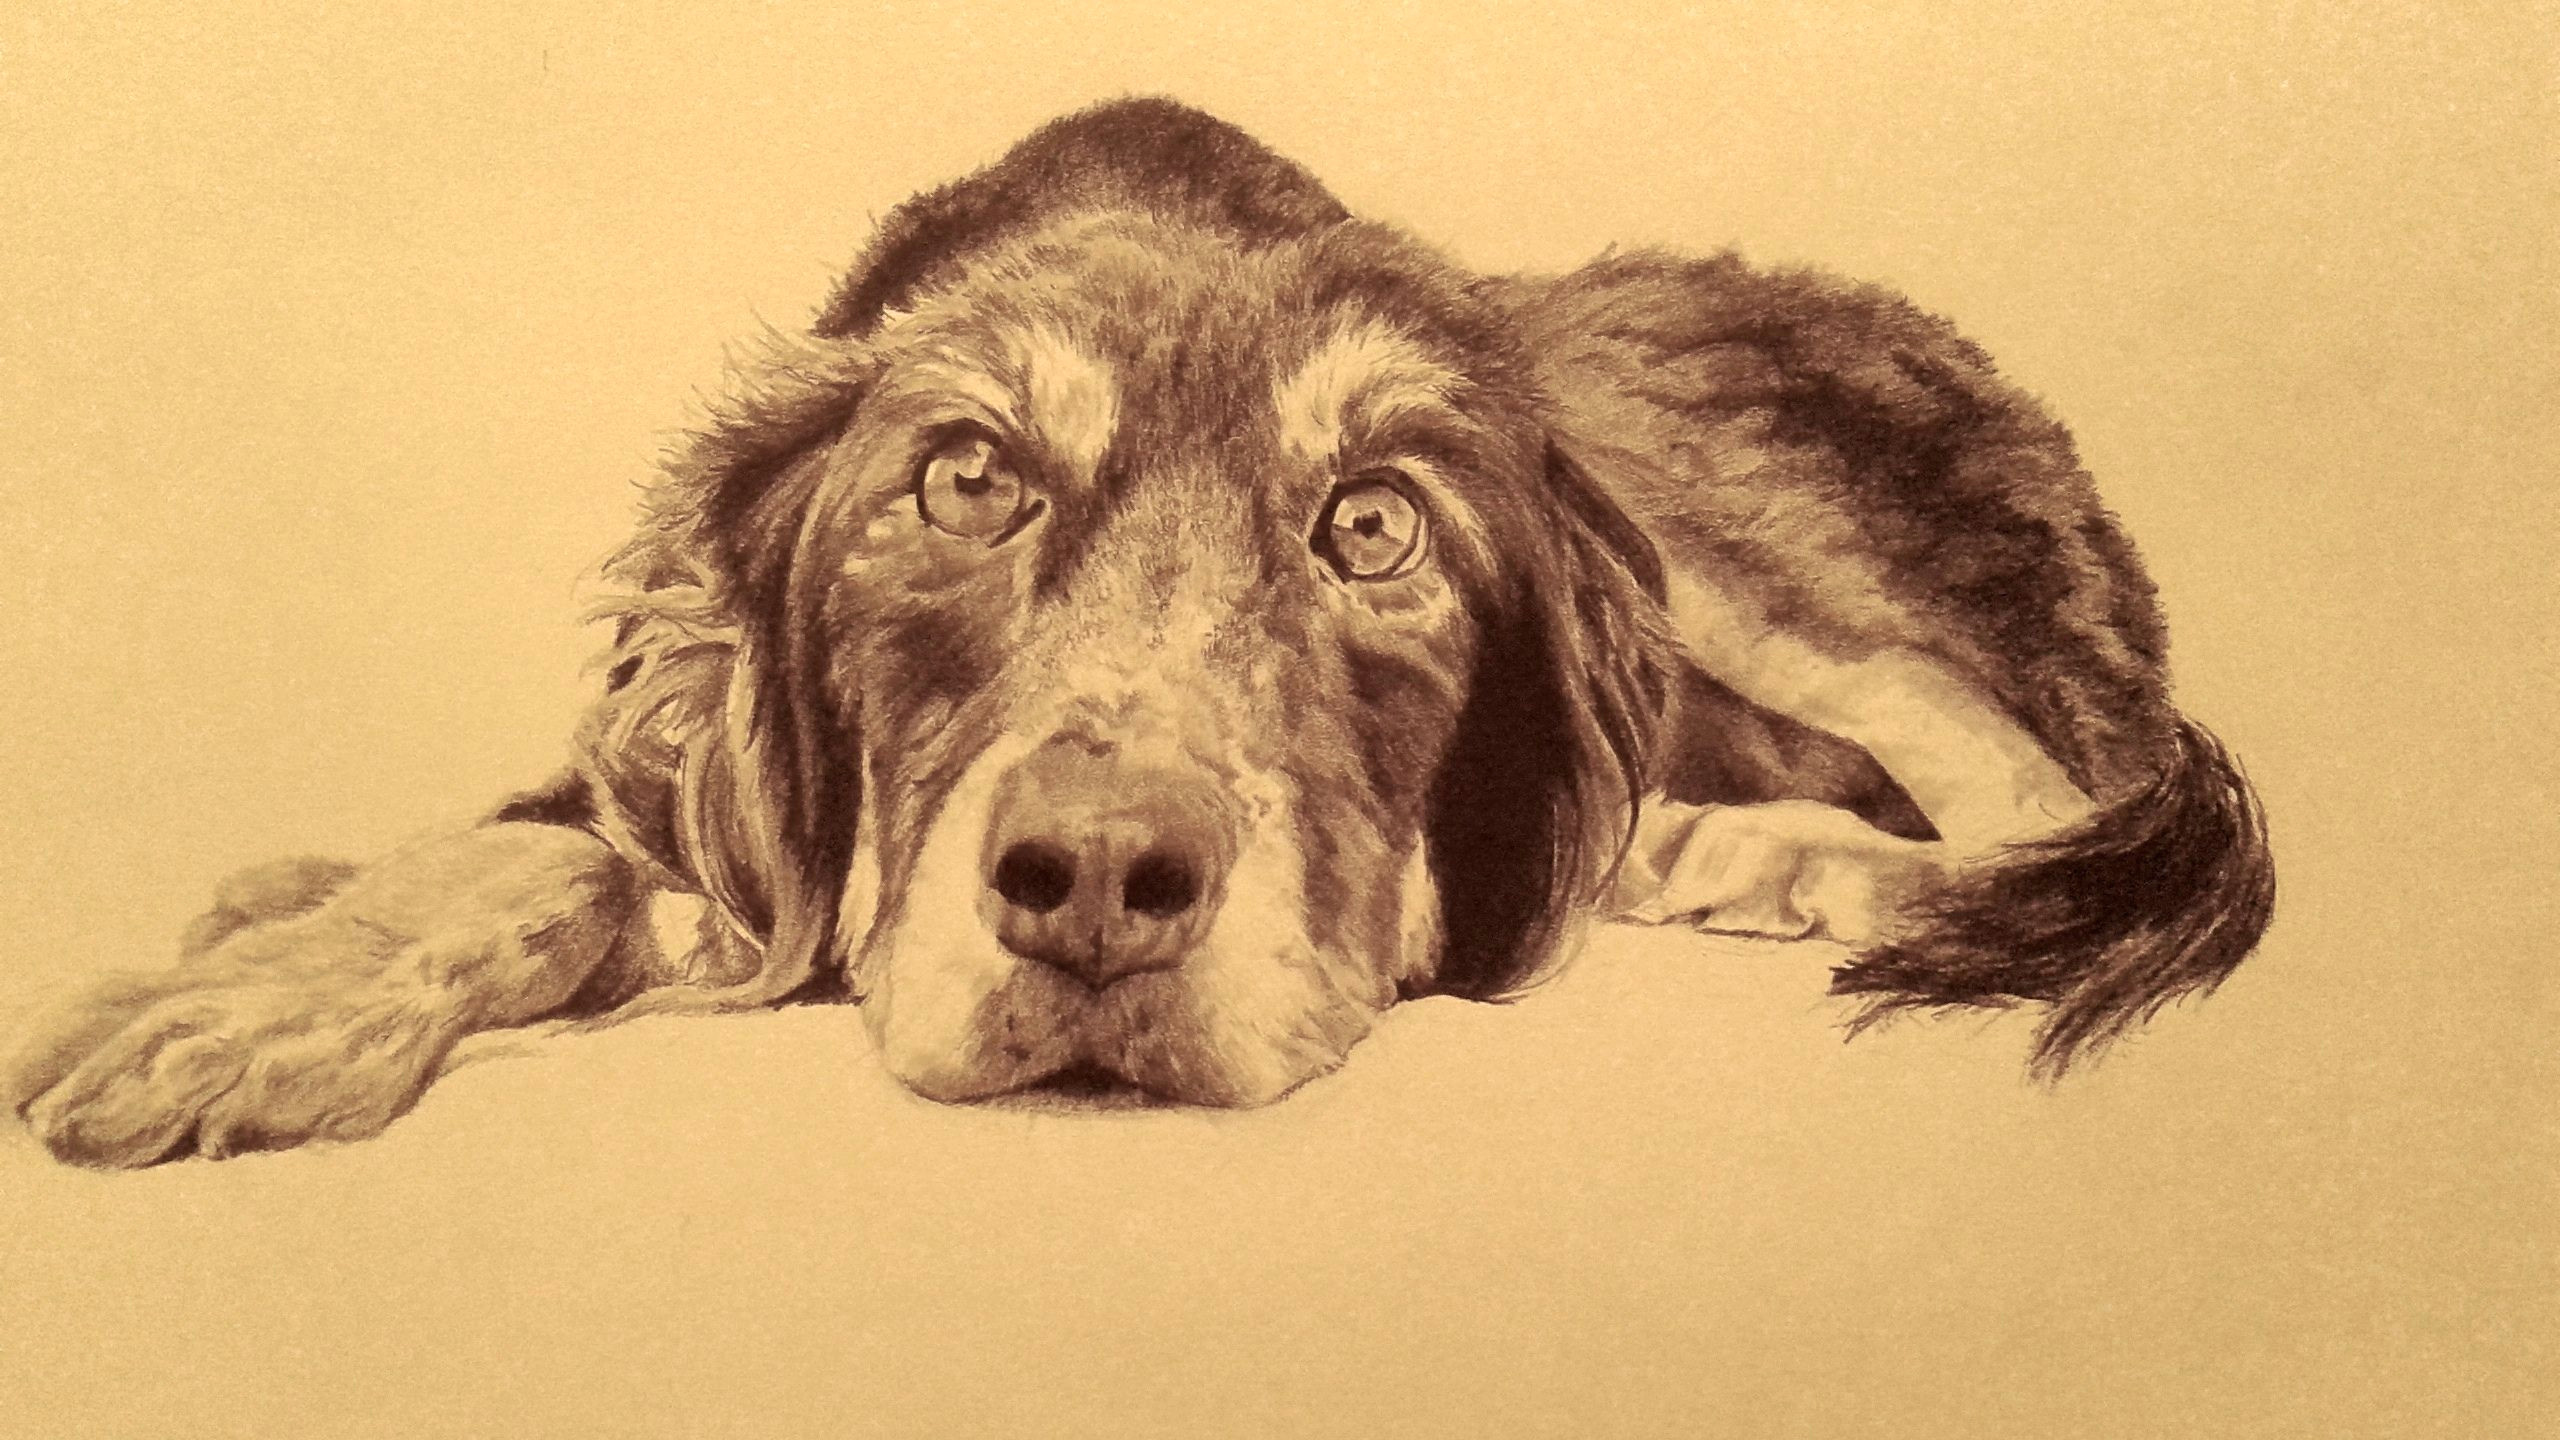 Drawing Of My Dog Drawing Of My Friend S Dog Graphite Art Pencil Drawings My Art